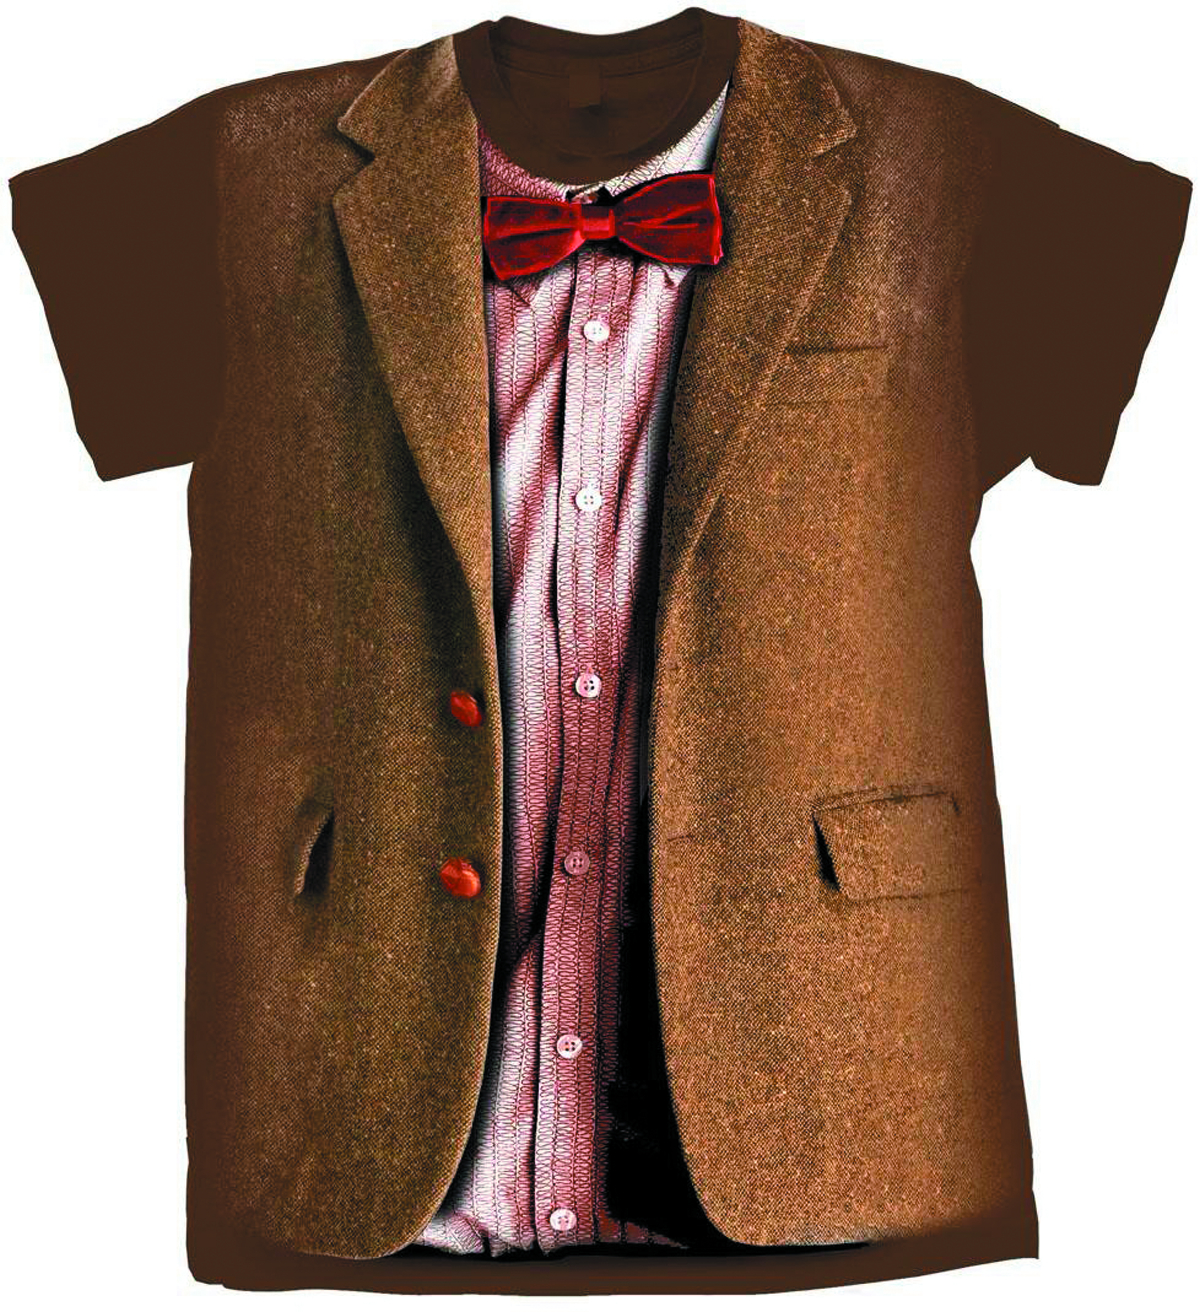 DOCTOR WHO ELEVENTH DOCTOR COSTUME T/S MED